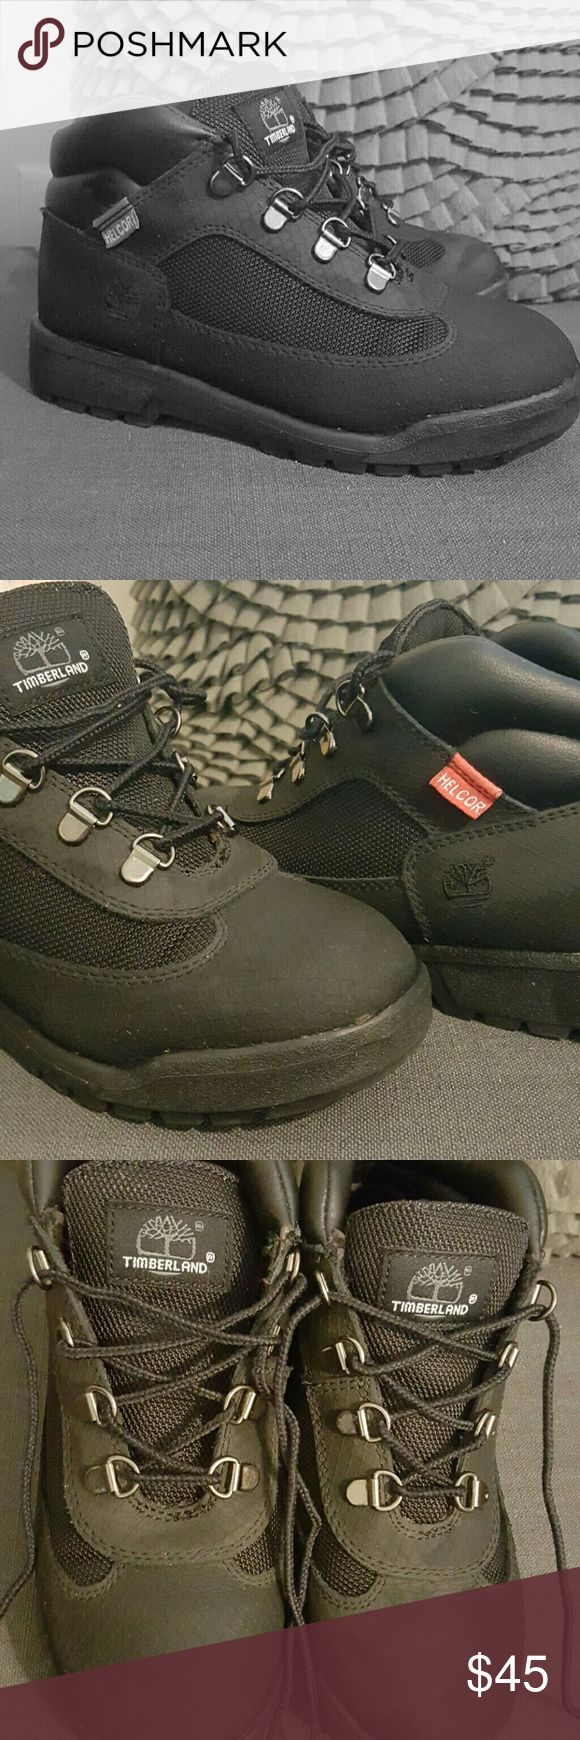 Helcor Timberland Boots Helcor Timberland Boots for little girl or little boy even can be a unisex boot. Black in color and great for the winter to come. I believe they are weather resistant and easy to clean. Slight wear but not very visible. Timberland Shoes Boots